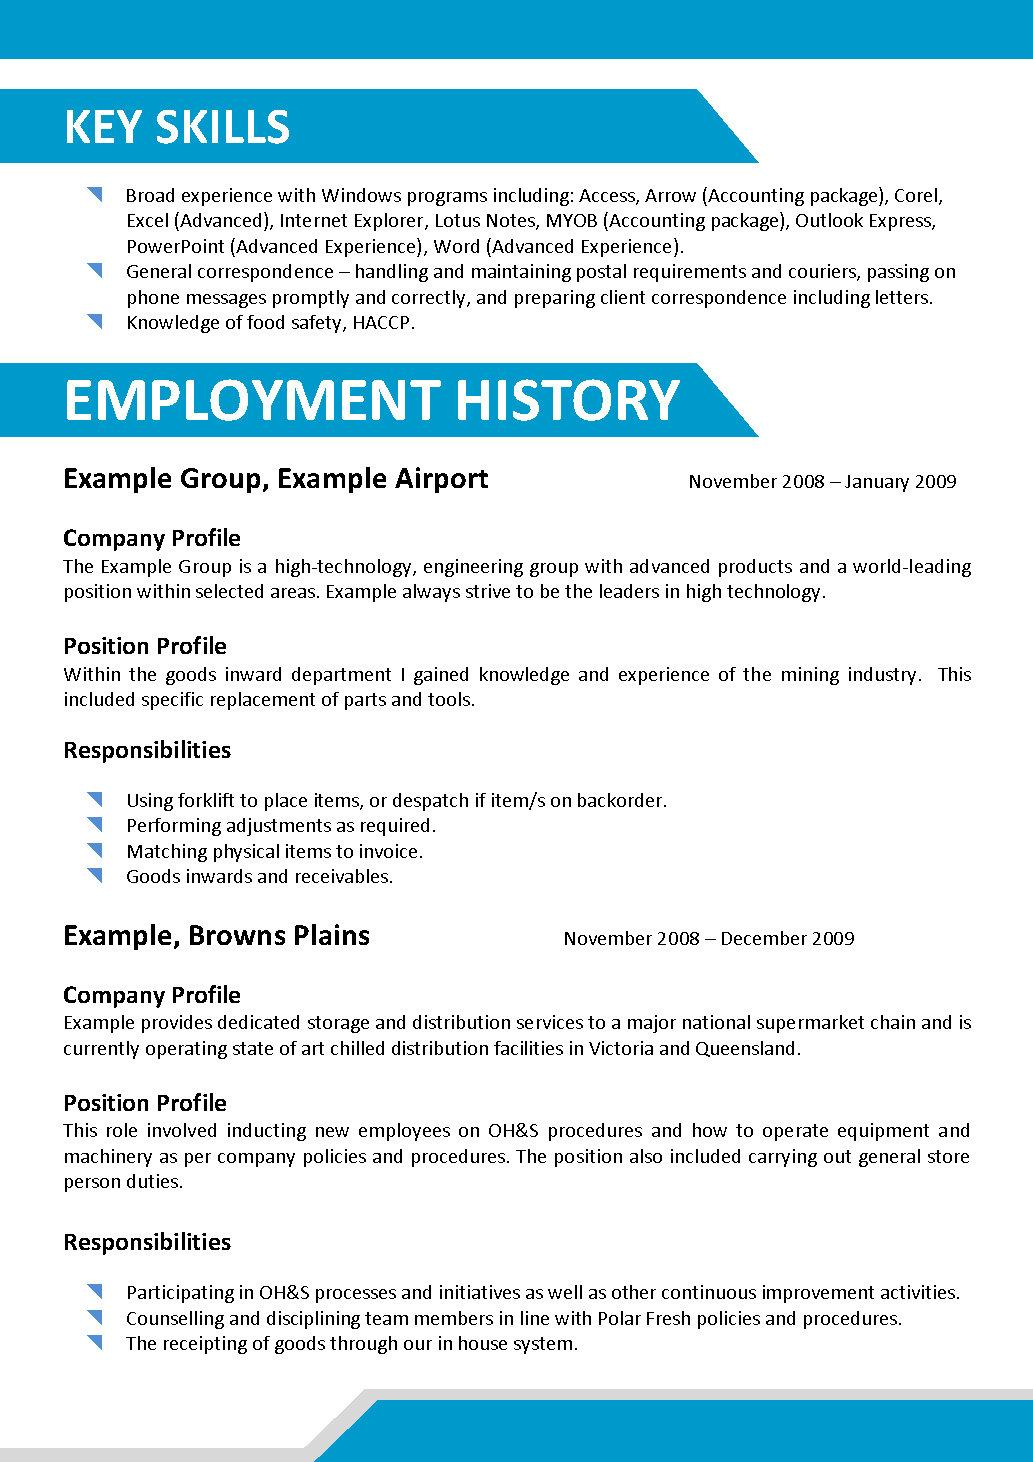 Australian Resume Template Accountant Resumes Australia Search Results Calendar 2015